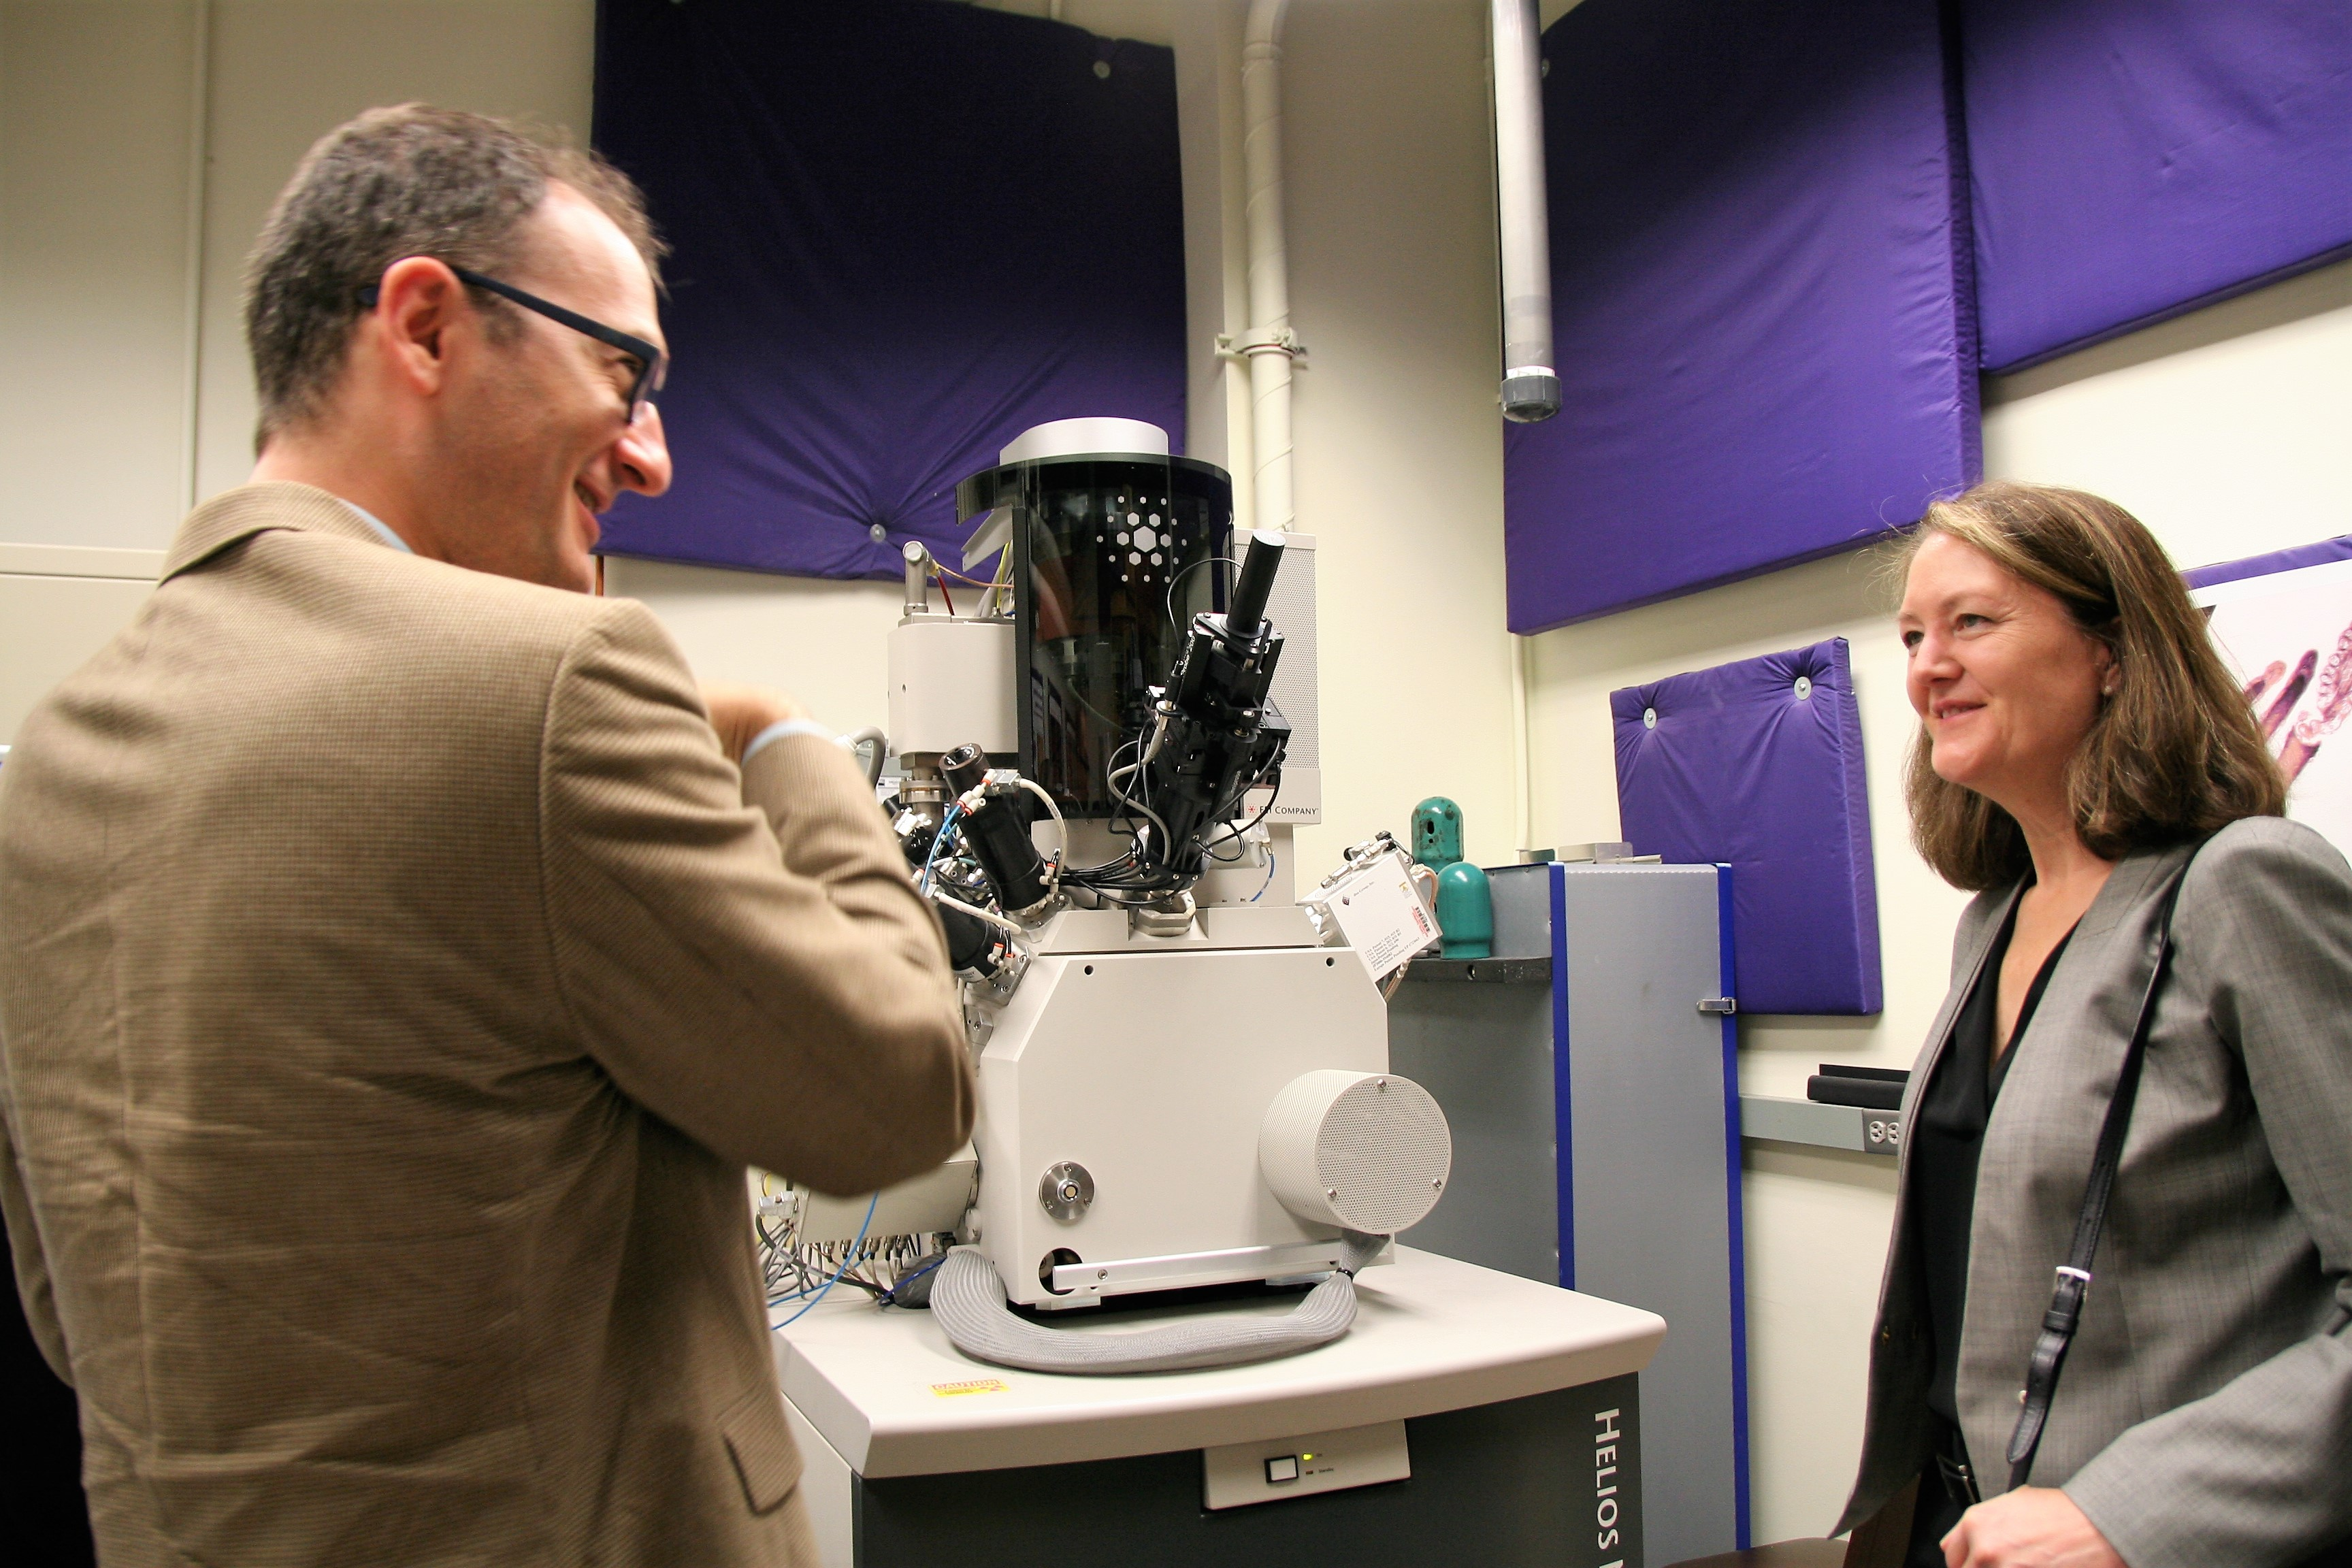 Director of Operations, Ben Meyers, gives Dr. Benson Tolle a tour of NUANCE Facilities.